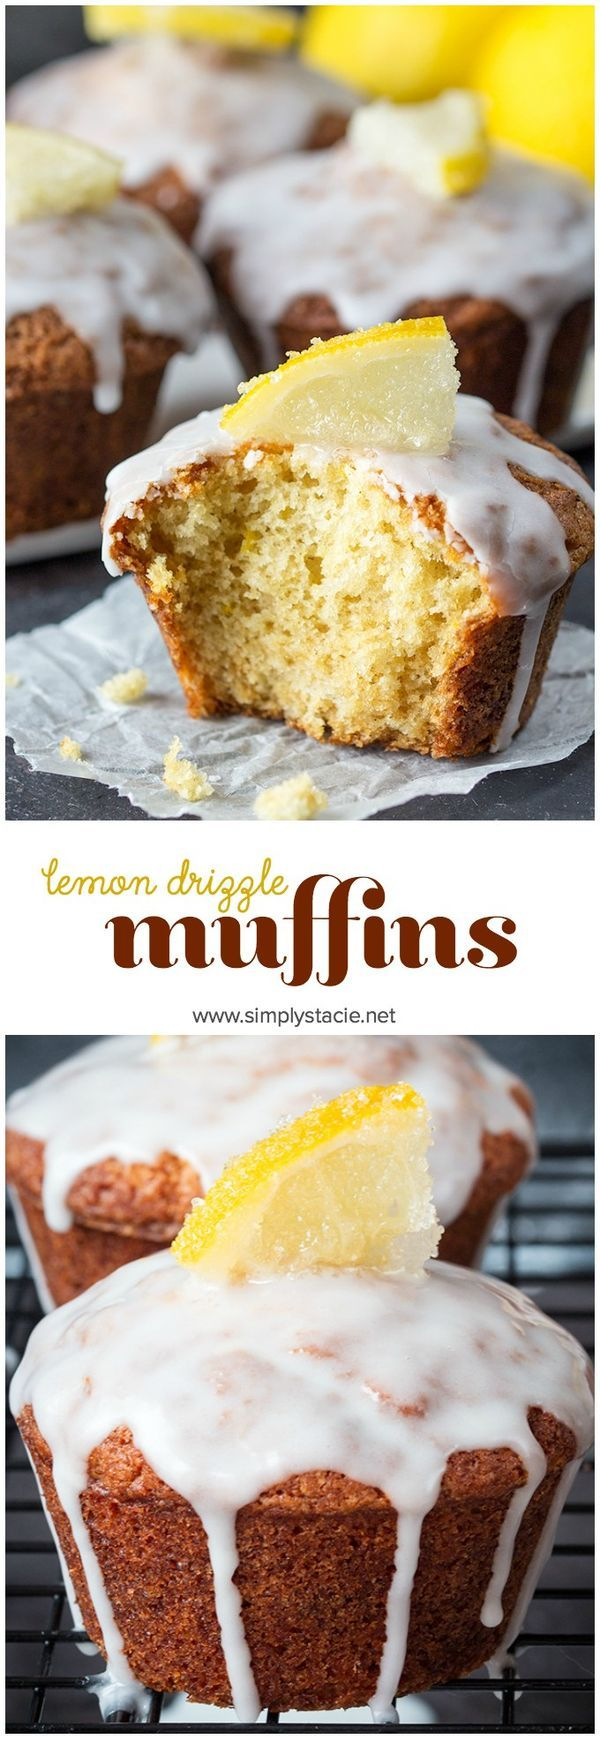 Lemon Drizzle Muffins - Zesty lemon muffins, topped with a lemon glaze and finished off with little slices of sugared lemons. Yum!